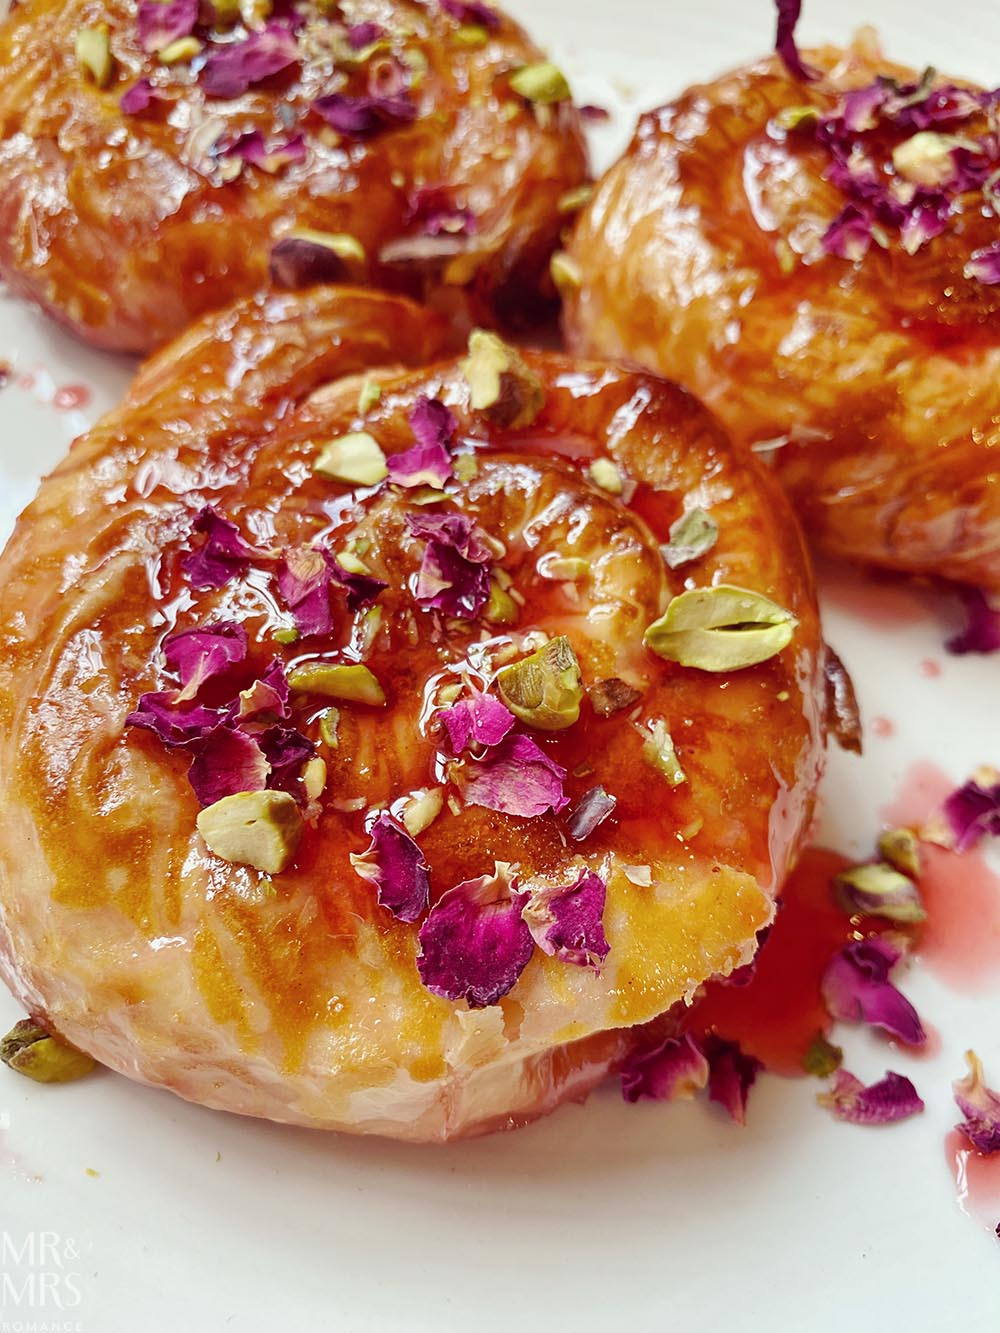 North African pastry recipe - almond mhencha pistachio and rose